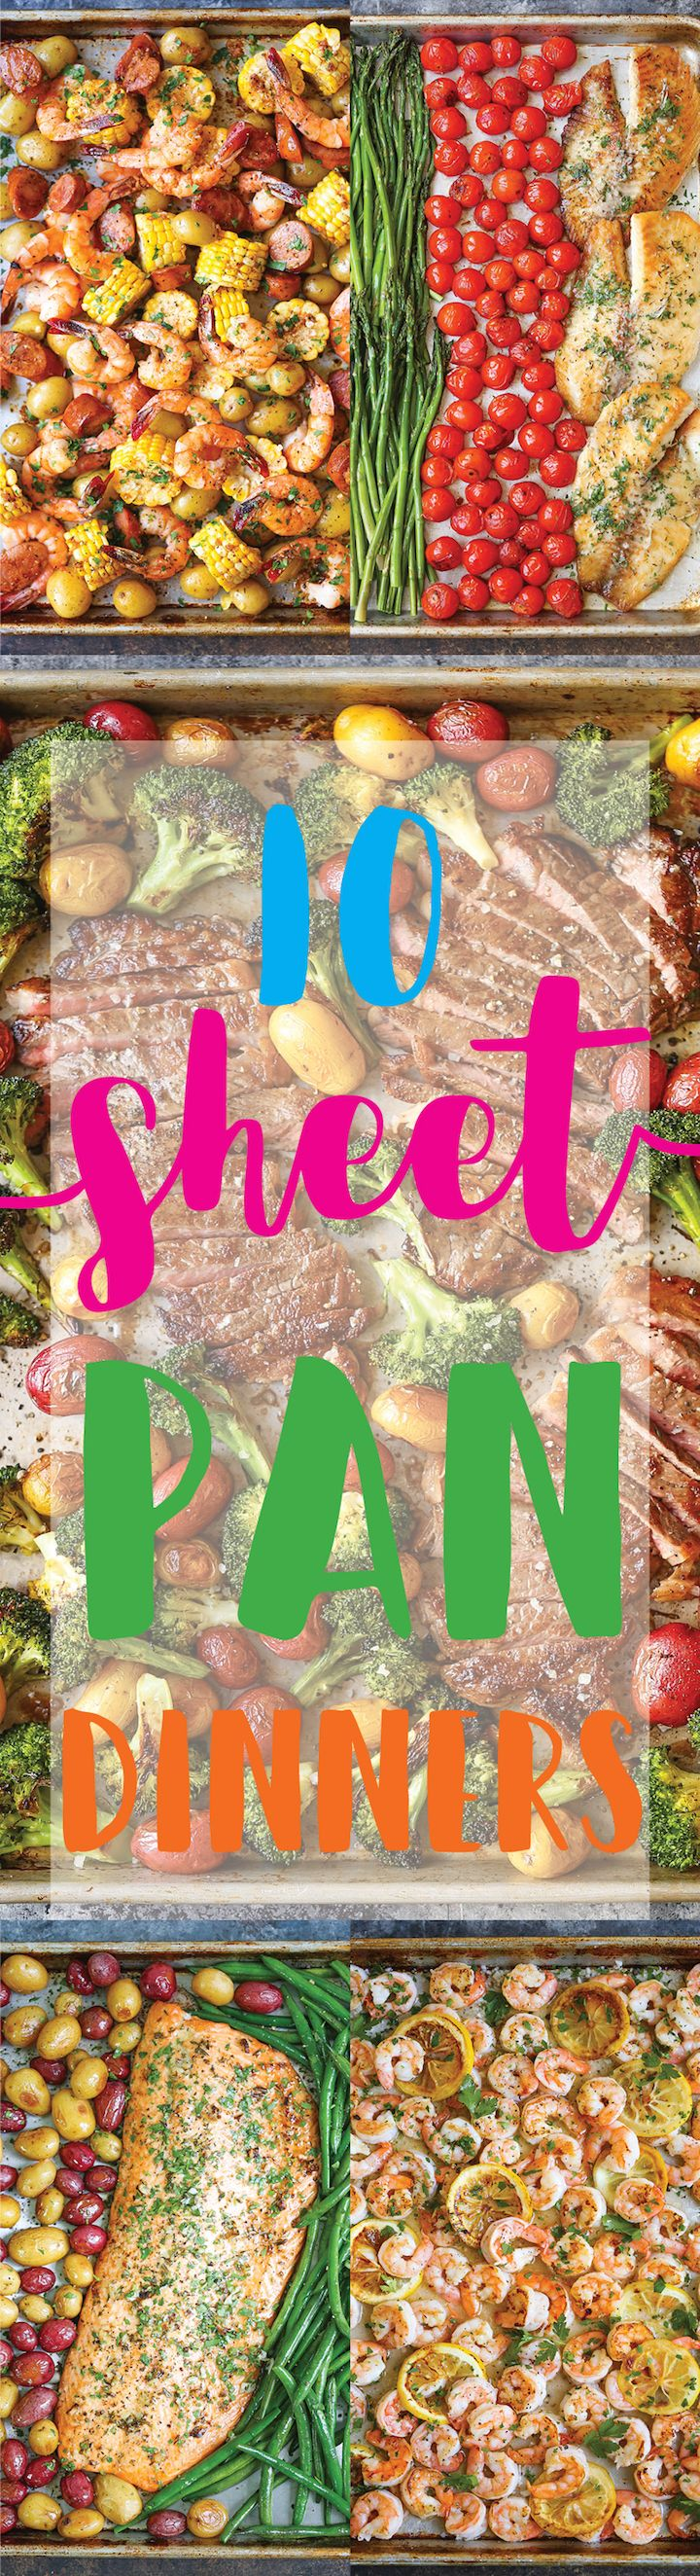 10 Sheet Pan Dinners - Speedy, family-friendly, no-brainer dinners you need to make tonight! These dinners are so easy to make and clean up is a breeze!